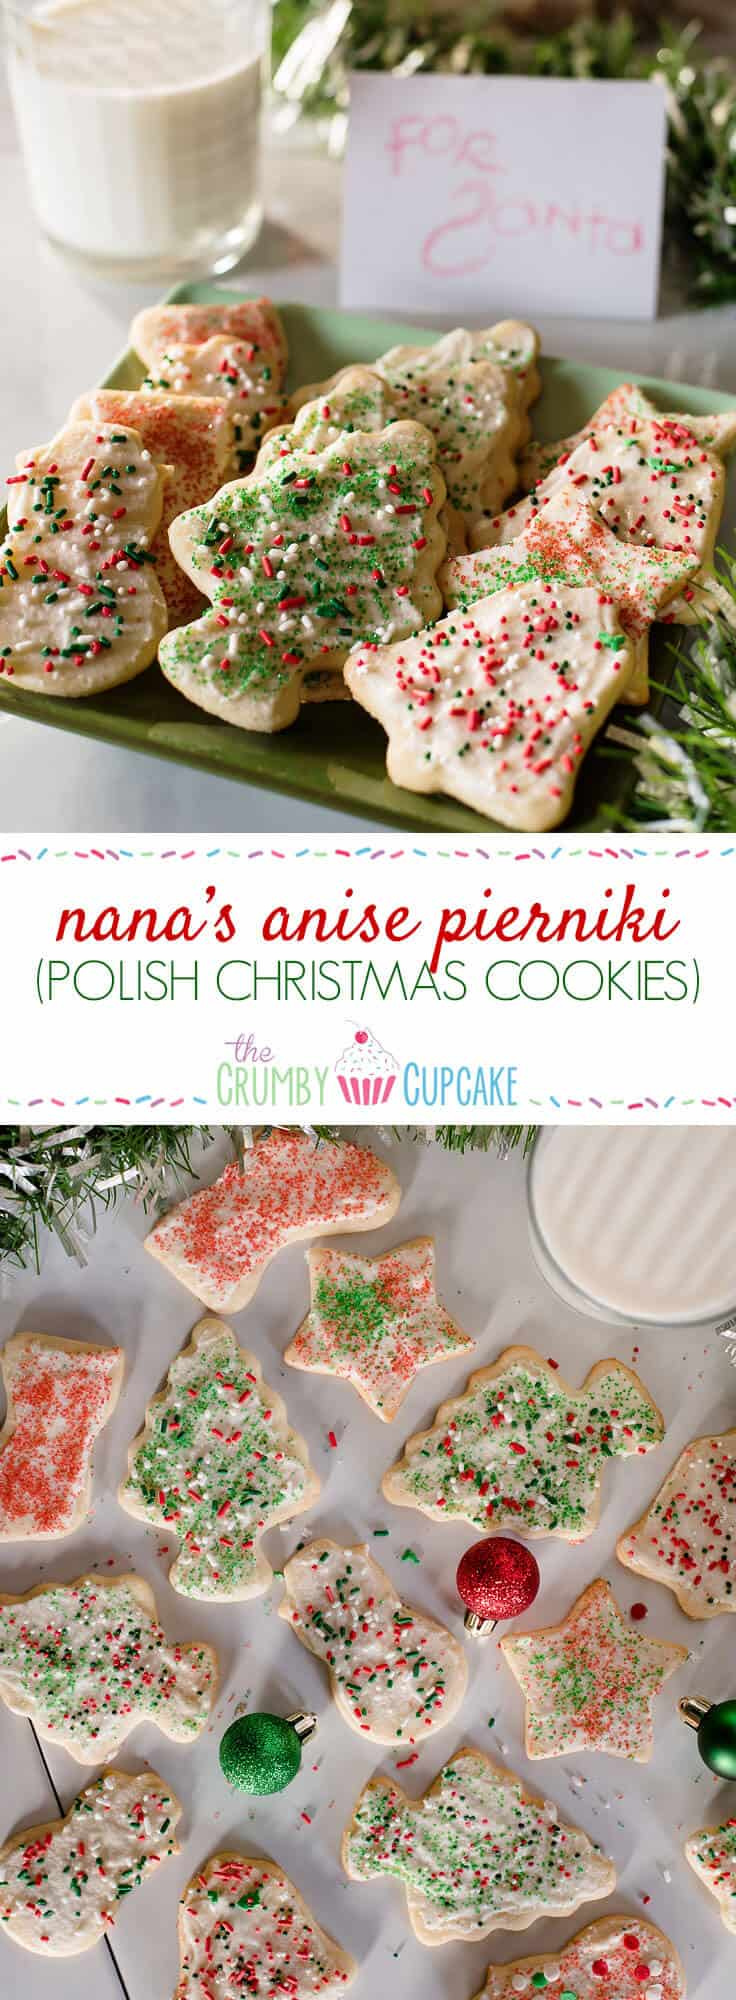 A little bit of patience and a lot of sprinkles will get you the most memorable Christmas experience when you whip up a batch of my Nana's Anise Pierniki (Polish Christmas Cookies Recipe)!